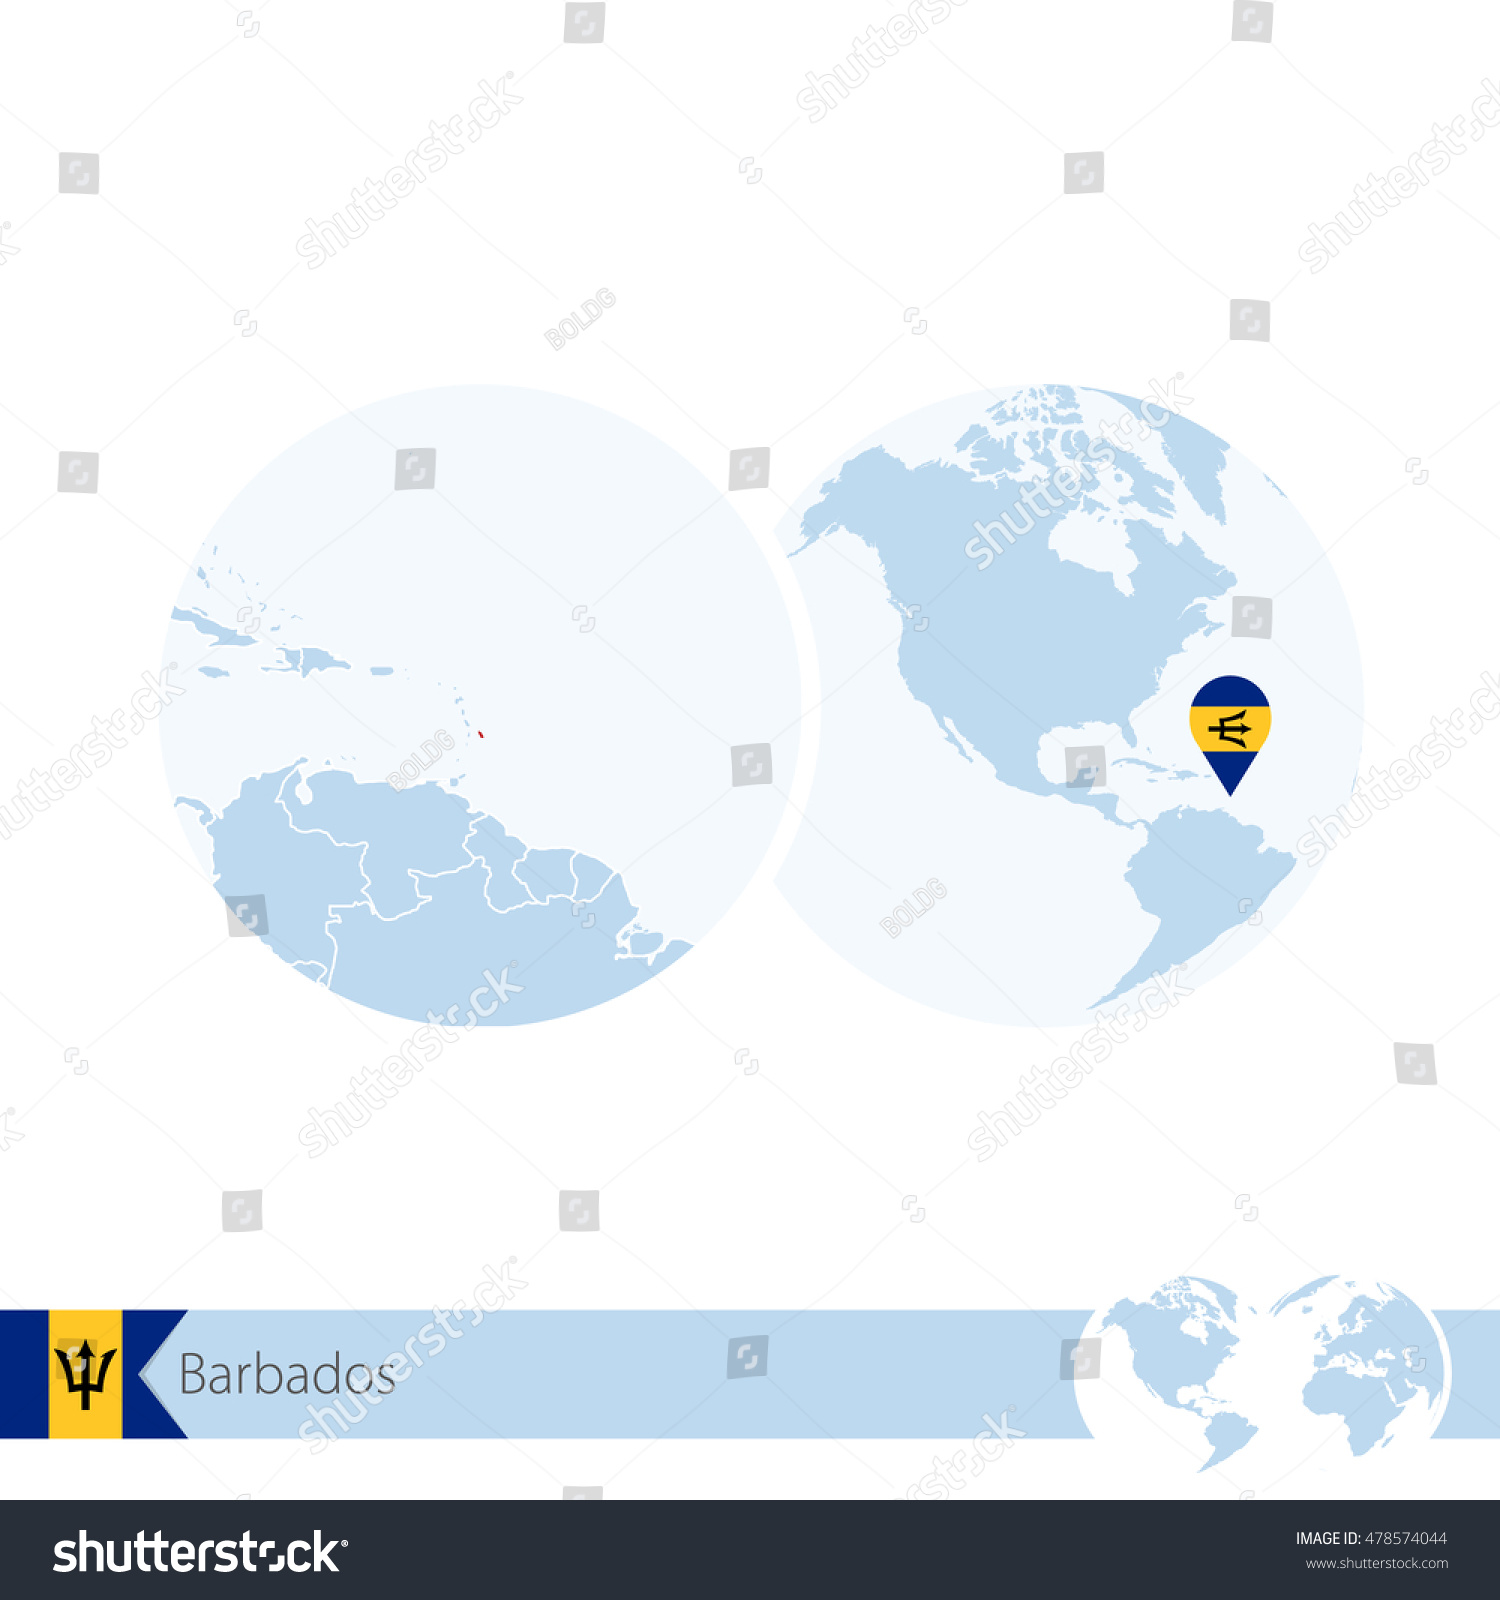 Where Is Barbados Located On The World Map Surf Blog Barbados Surf Spots Christ Church Maps And Orientation Christ Church Barbados Barbados Fans Share Barbados Maps Maps Of Barbados Flat World Map